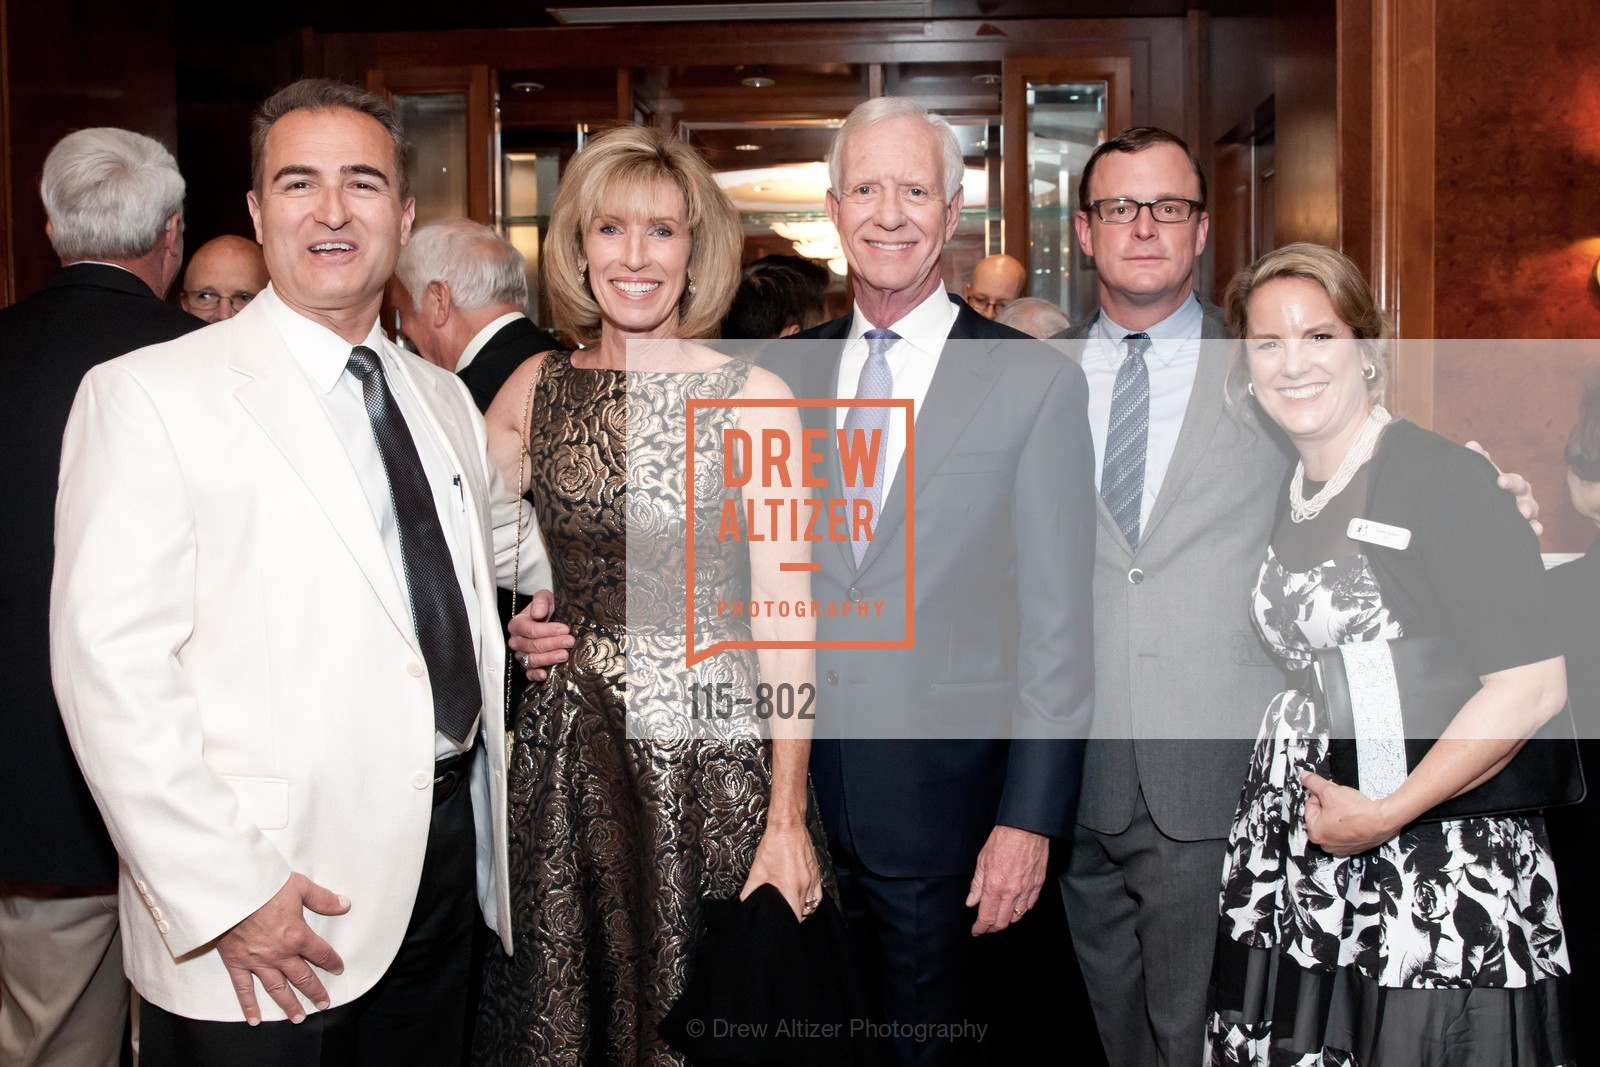 George Papadoyannis, Lorrie Sullenberger, Sully Sullenberger, Dawn Kruger, MR PORTER Celebrate The San Francisco Issue of The Journal, US, April 24th, 2015,Drew Altizer, Drew Altizer Photography, full-service agency, private events, San Francisco photographer, photographer california